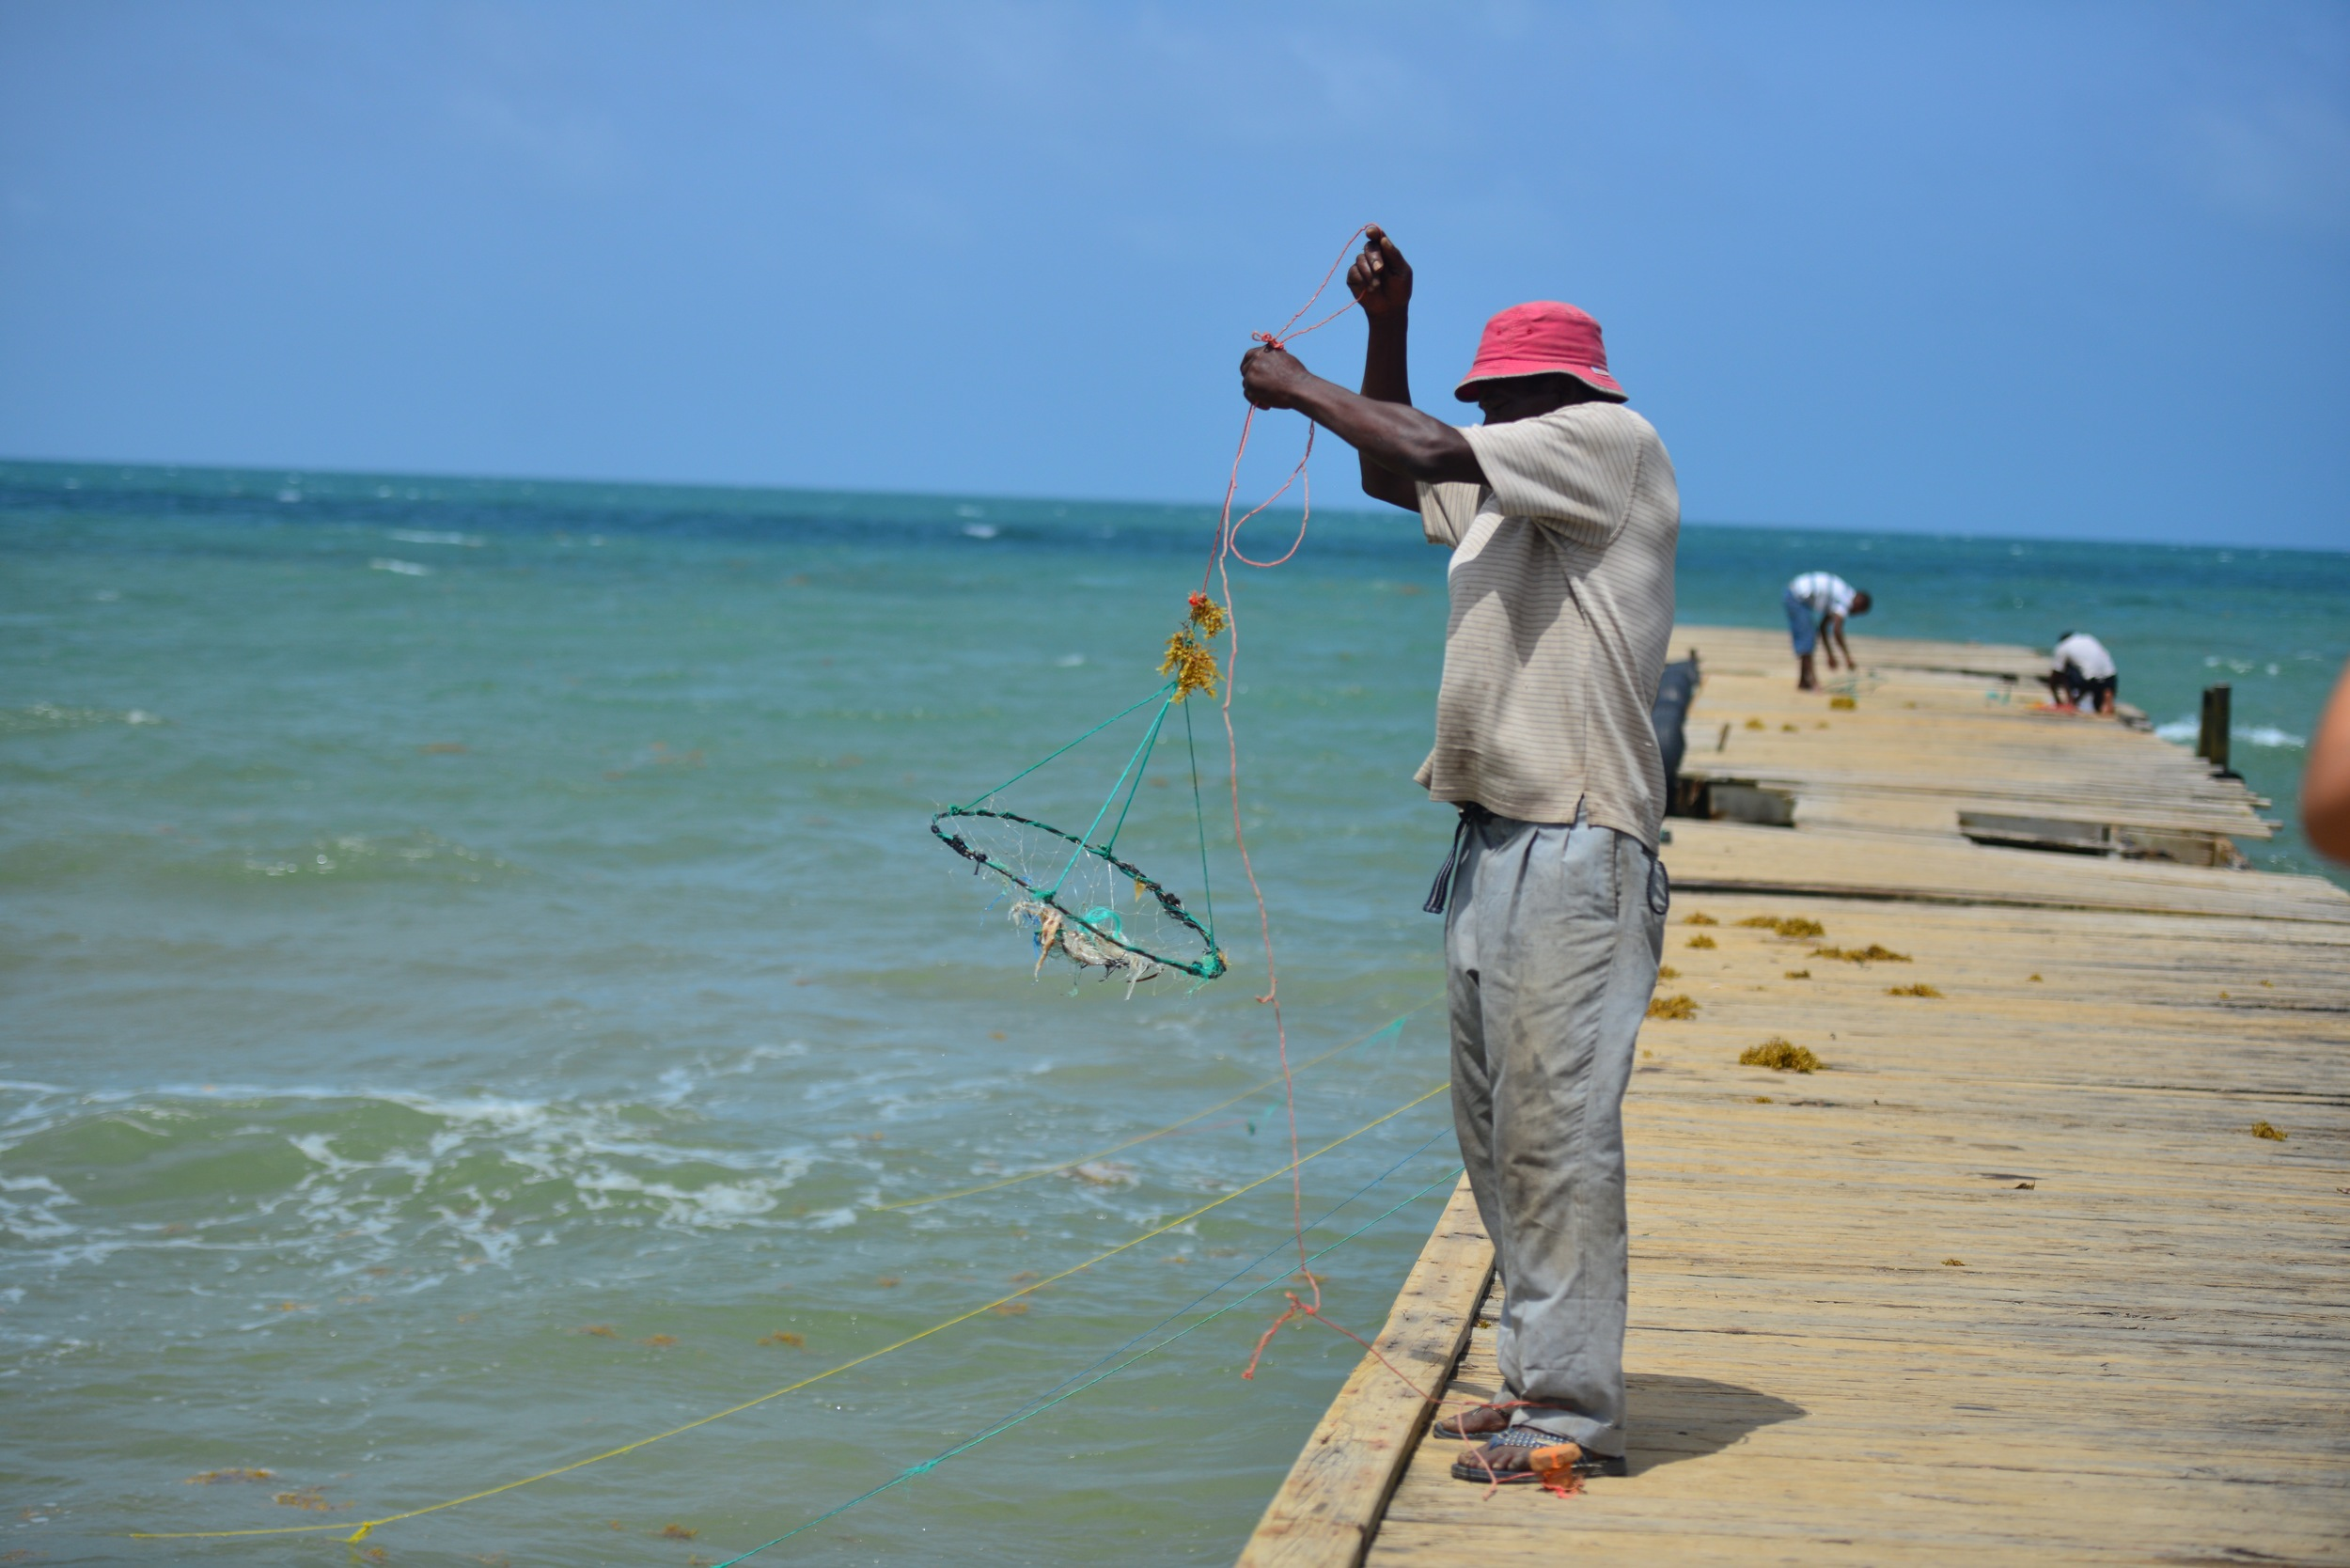 Some fear that large amounts of Sargassum could disrupt the livelihoods of fisherman or drive away tourists.